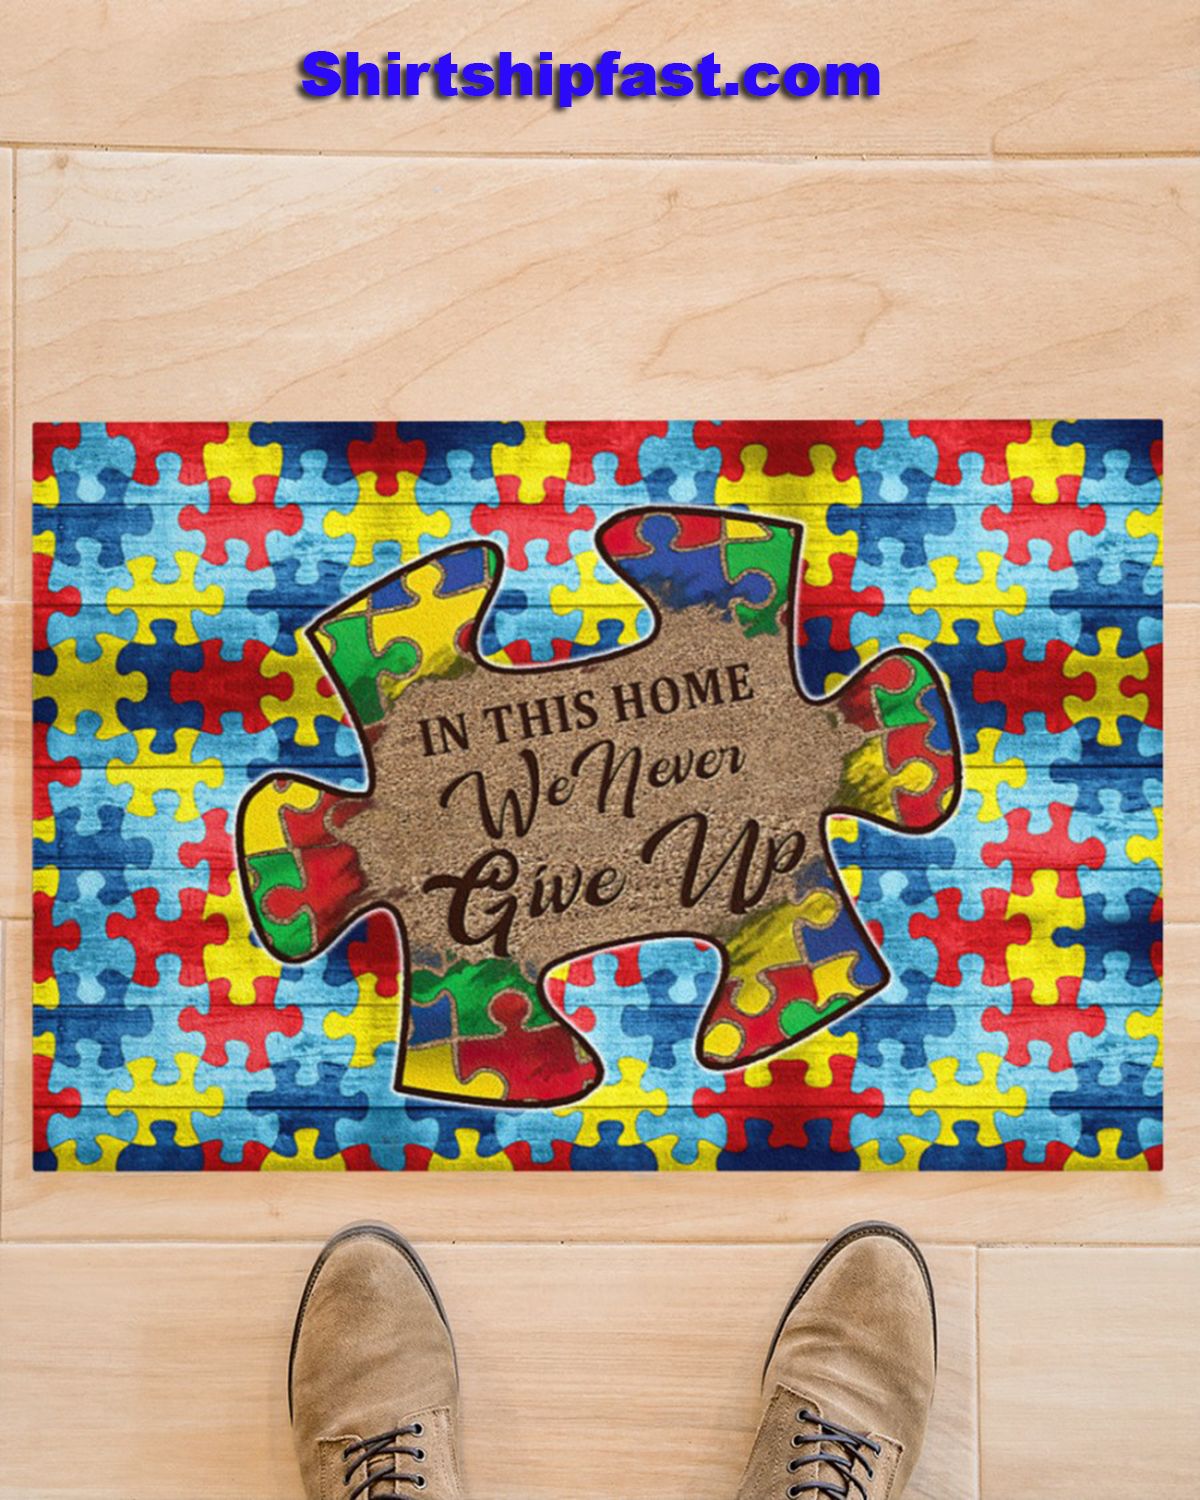 Autism In this home we never give up doormat - Picture 1